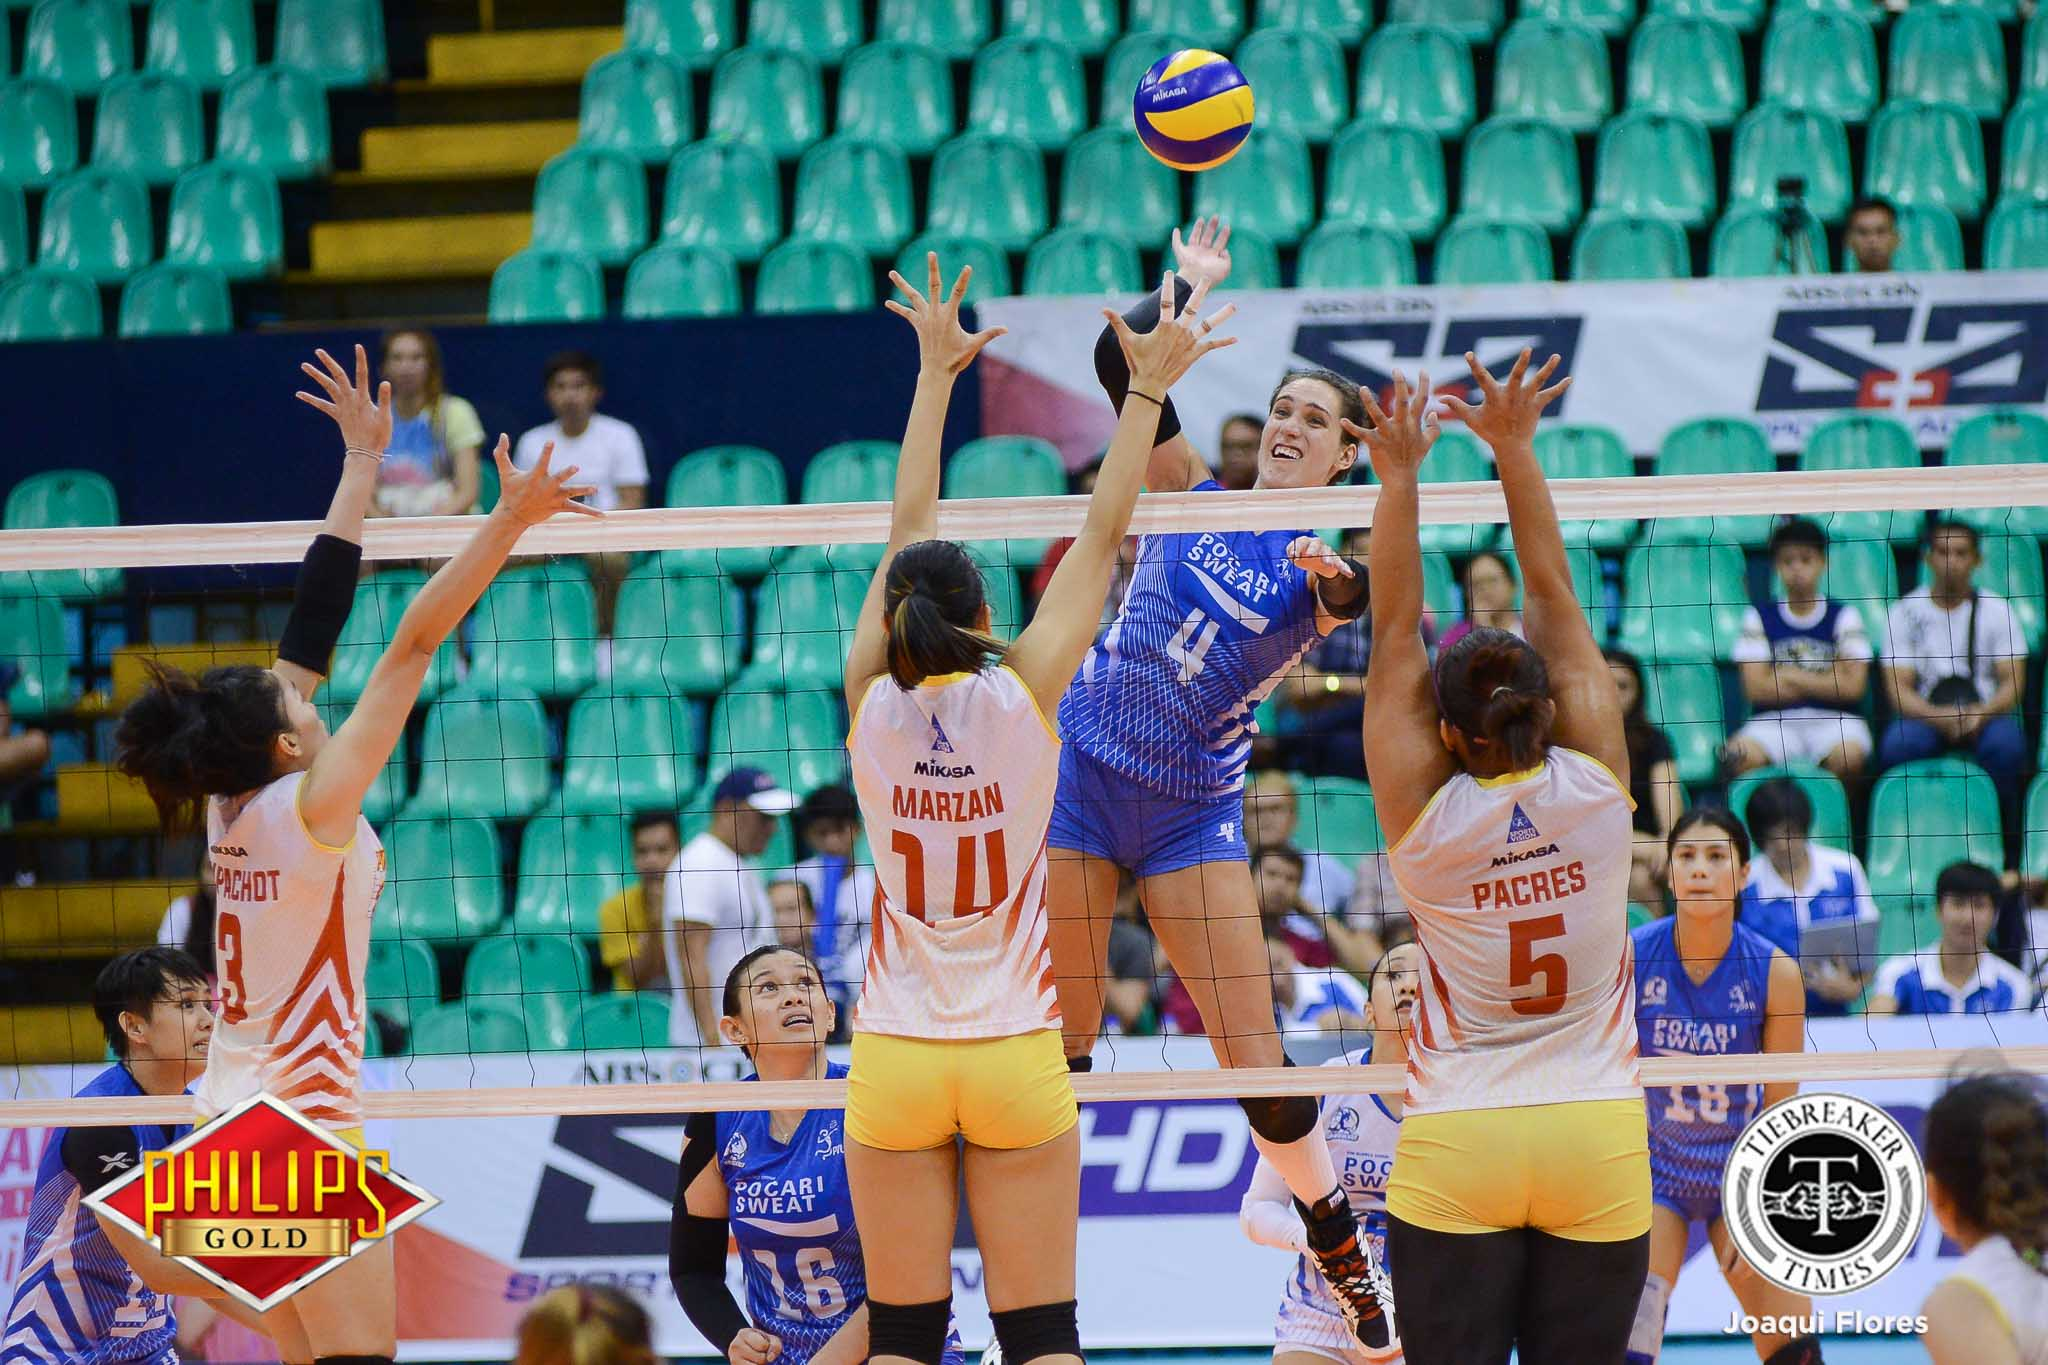 Tiebreaker Times Pocari Sweat cracks Power Smashers, earns shot at third title News PVL Volleyball  Rommel Abella Power Smashers Pocari Sweat Lady Warriors Nes Pamilar Myla Pablo Michelle Strizak Melissa Gohing Kannika Thipachot Hyapa Amporn Gyzelle Sy 2017 PVL Women's Reinforced Conference 2017 PVL Season